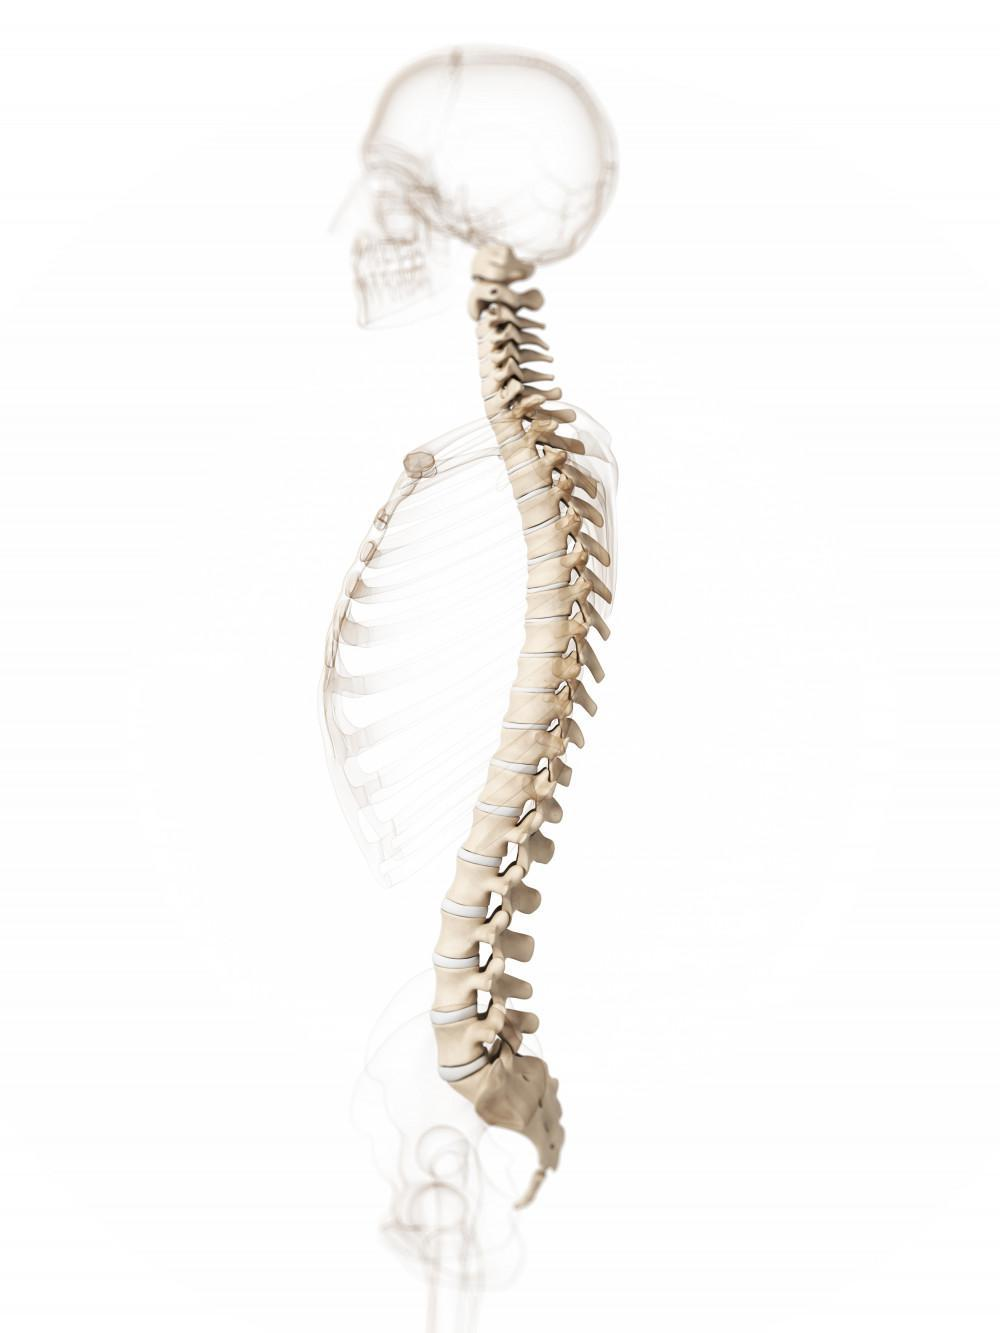 scoliosis, spine, back pain, Texas Spine Consultants